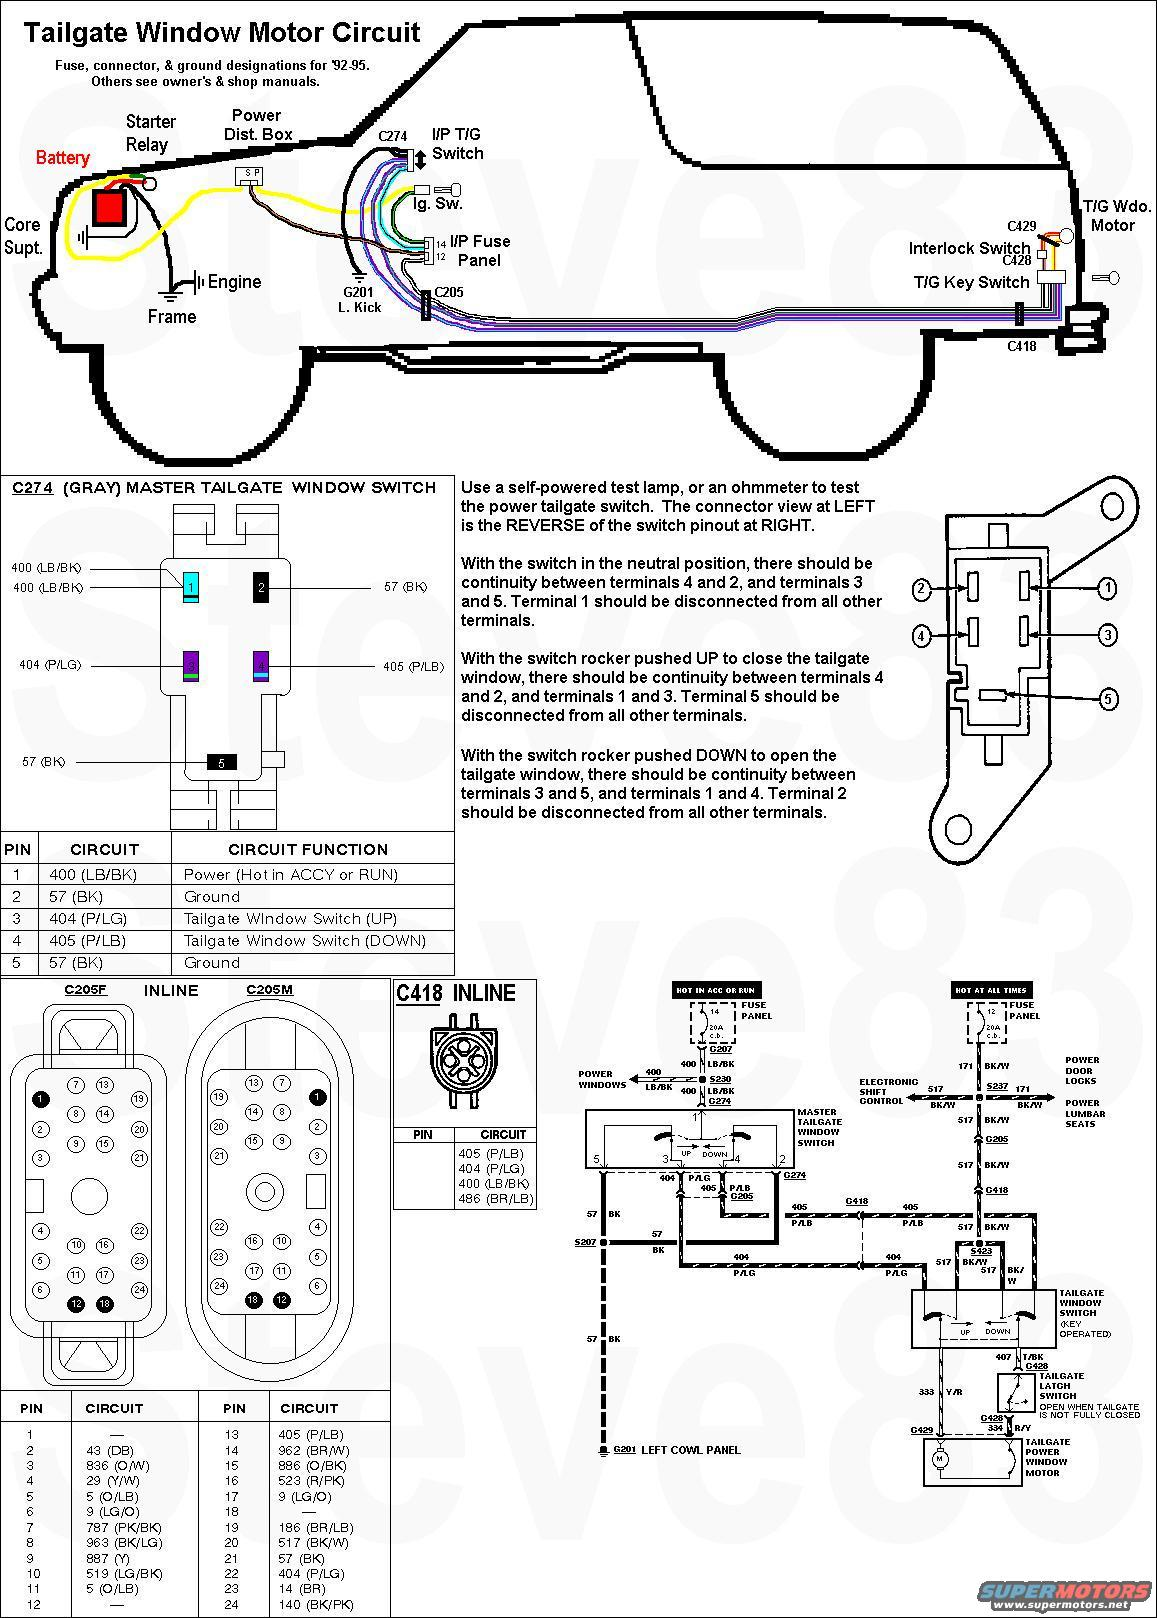 wmtgmotorwiring wiring diagram 1974 ford bronco the wiring diagram readingrat net 1979 ford bronco fuse box diagram at edmiracle.co